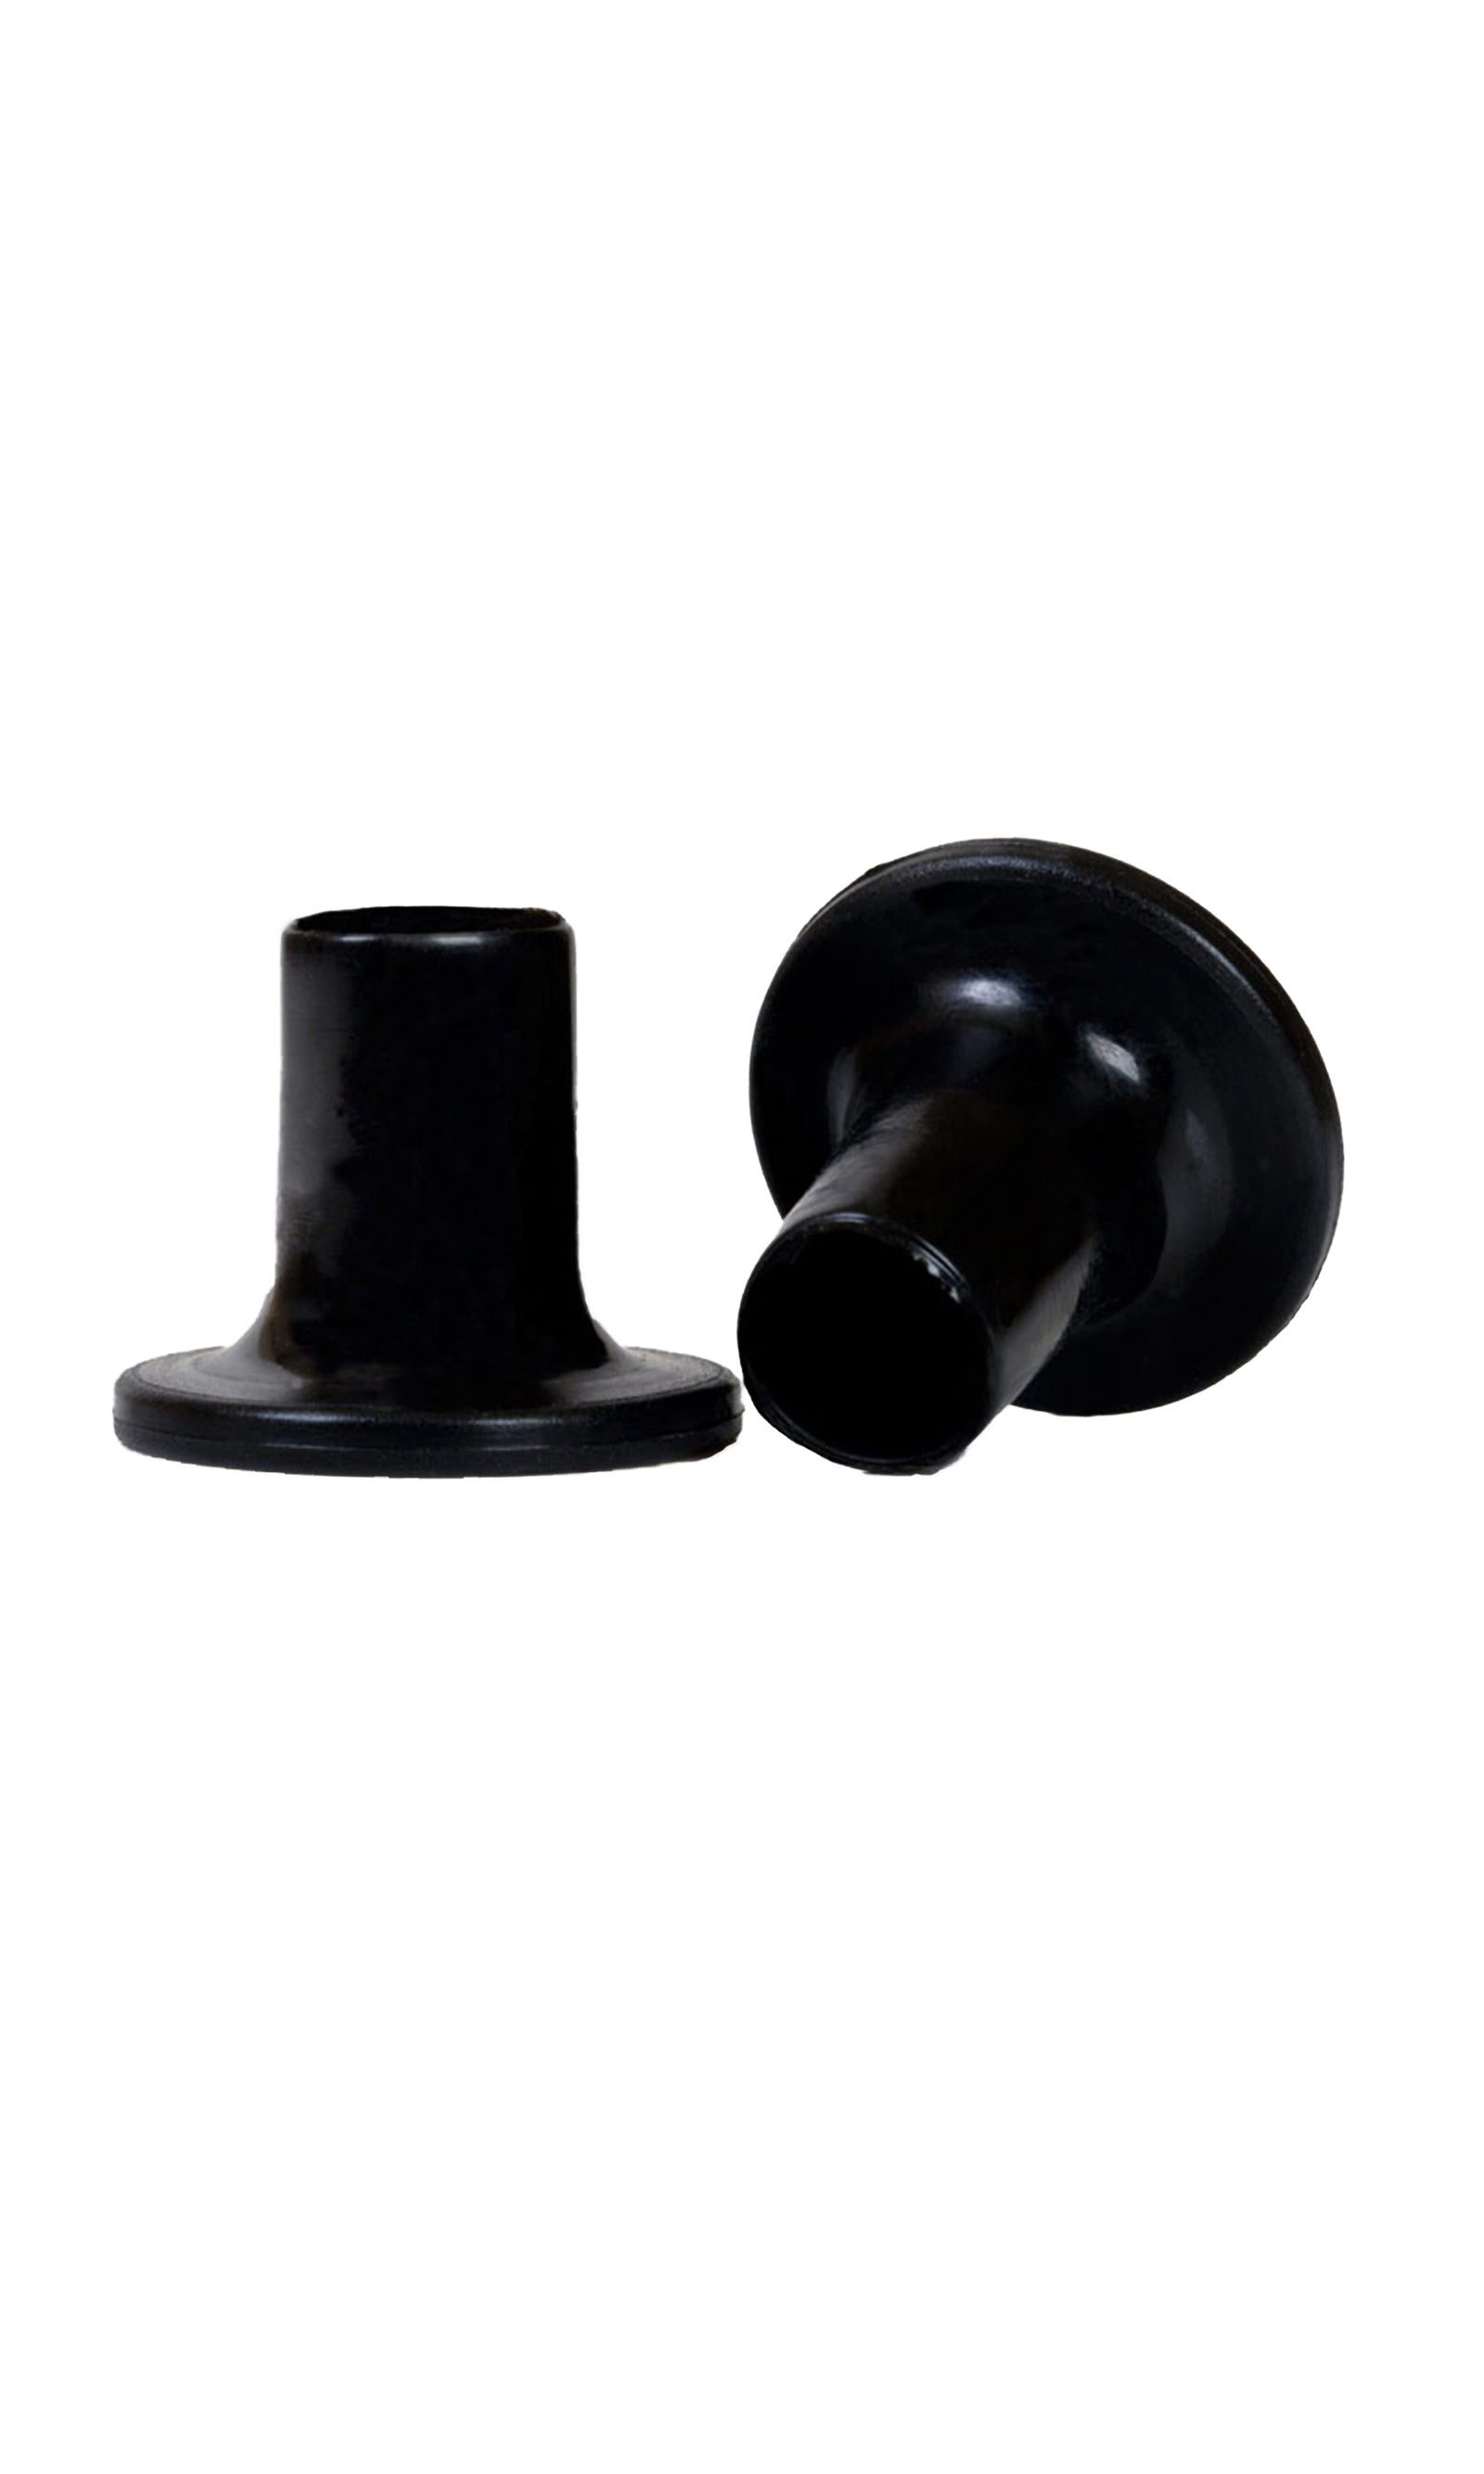 Heel Stoppers Black - Heel Protection For Grass & Gravel